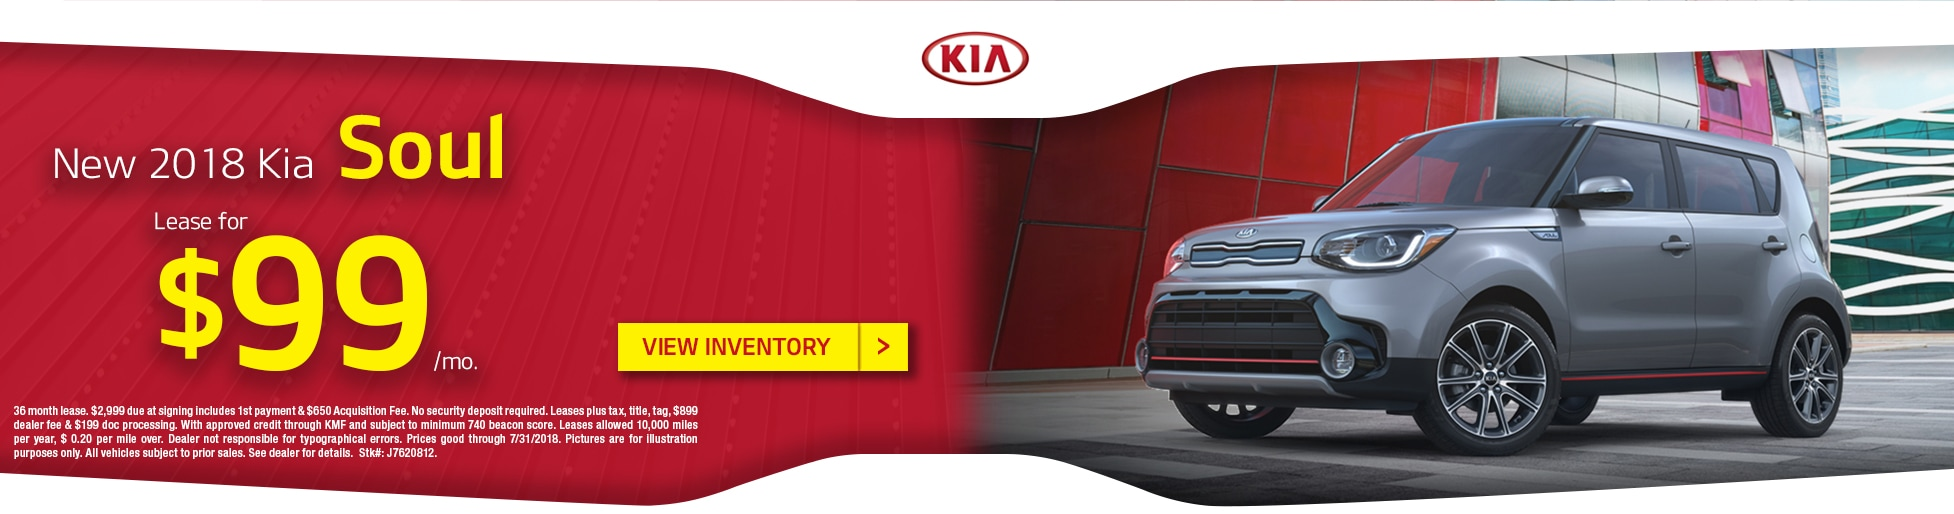 Kia Soul West Palm Beach